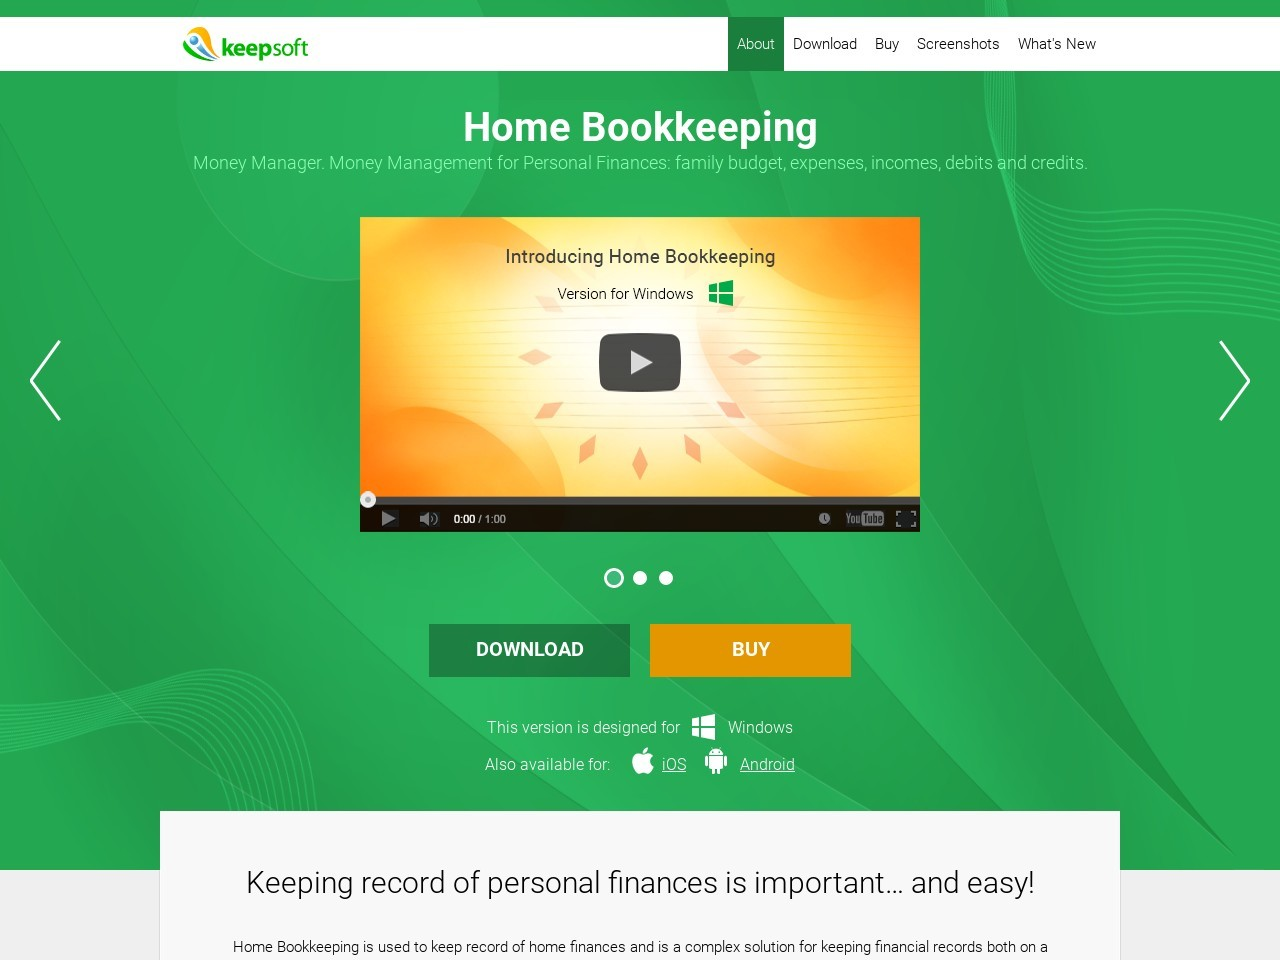 Home Bookkeeping for mobile devices